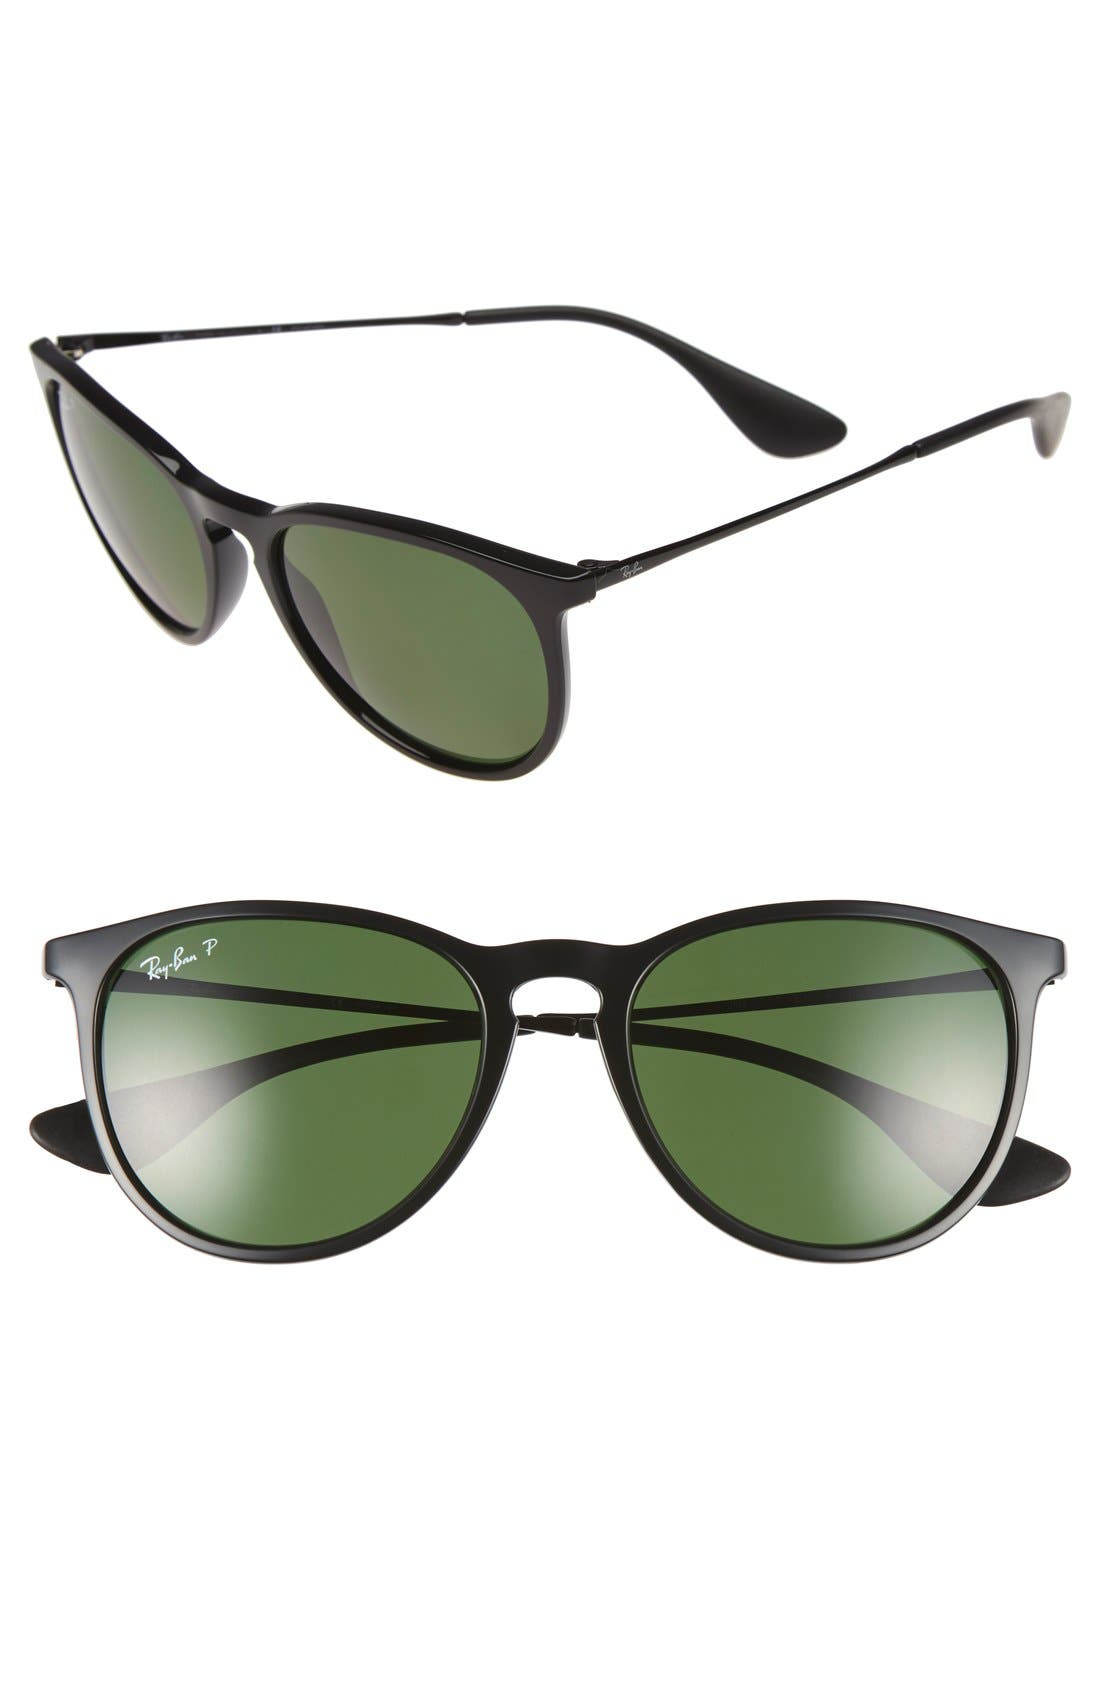 Erika Classic 54mm Sunglasses,                         Main,                         color, Black/ Green